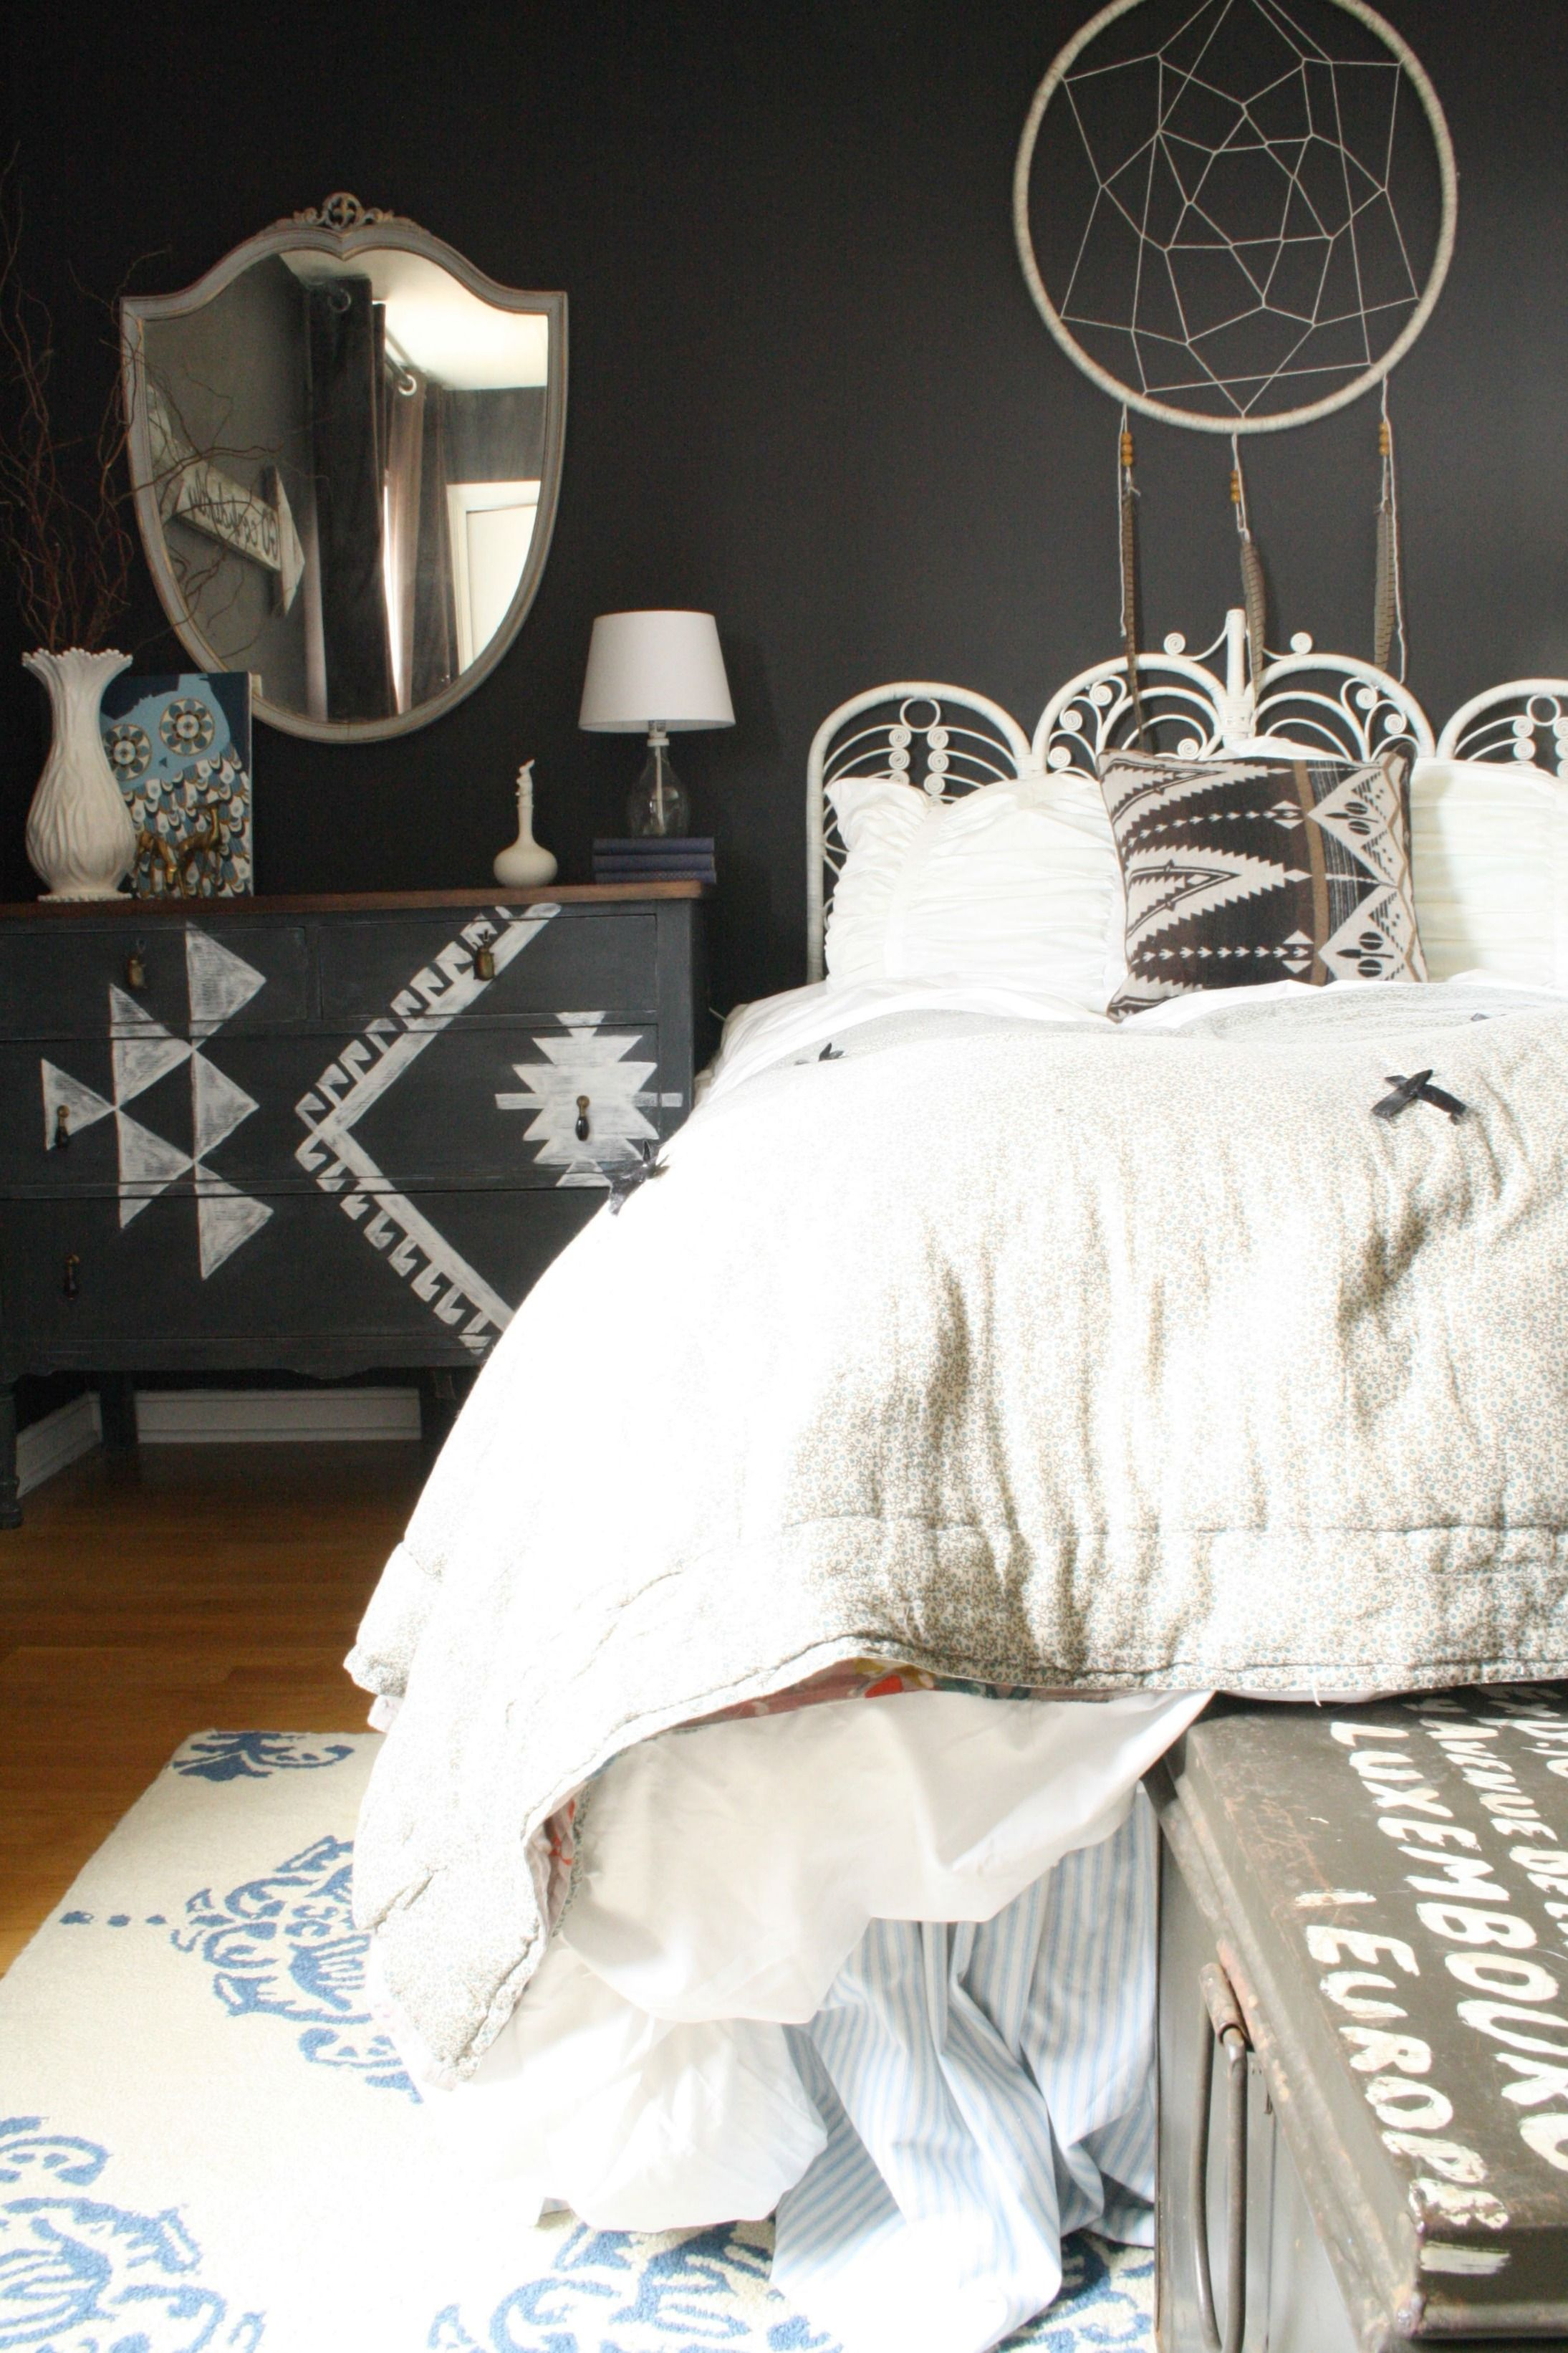 DIY Kilim Inspired Dresser Boho Chic BedroomBedroom